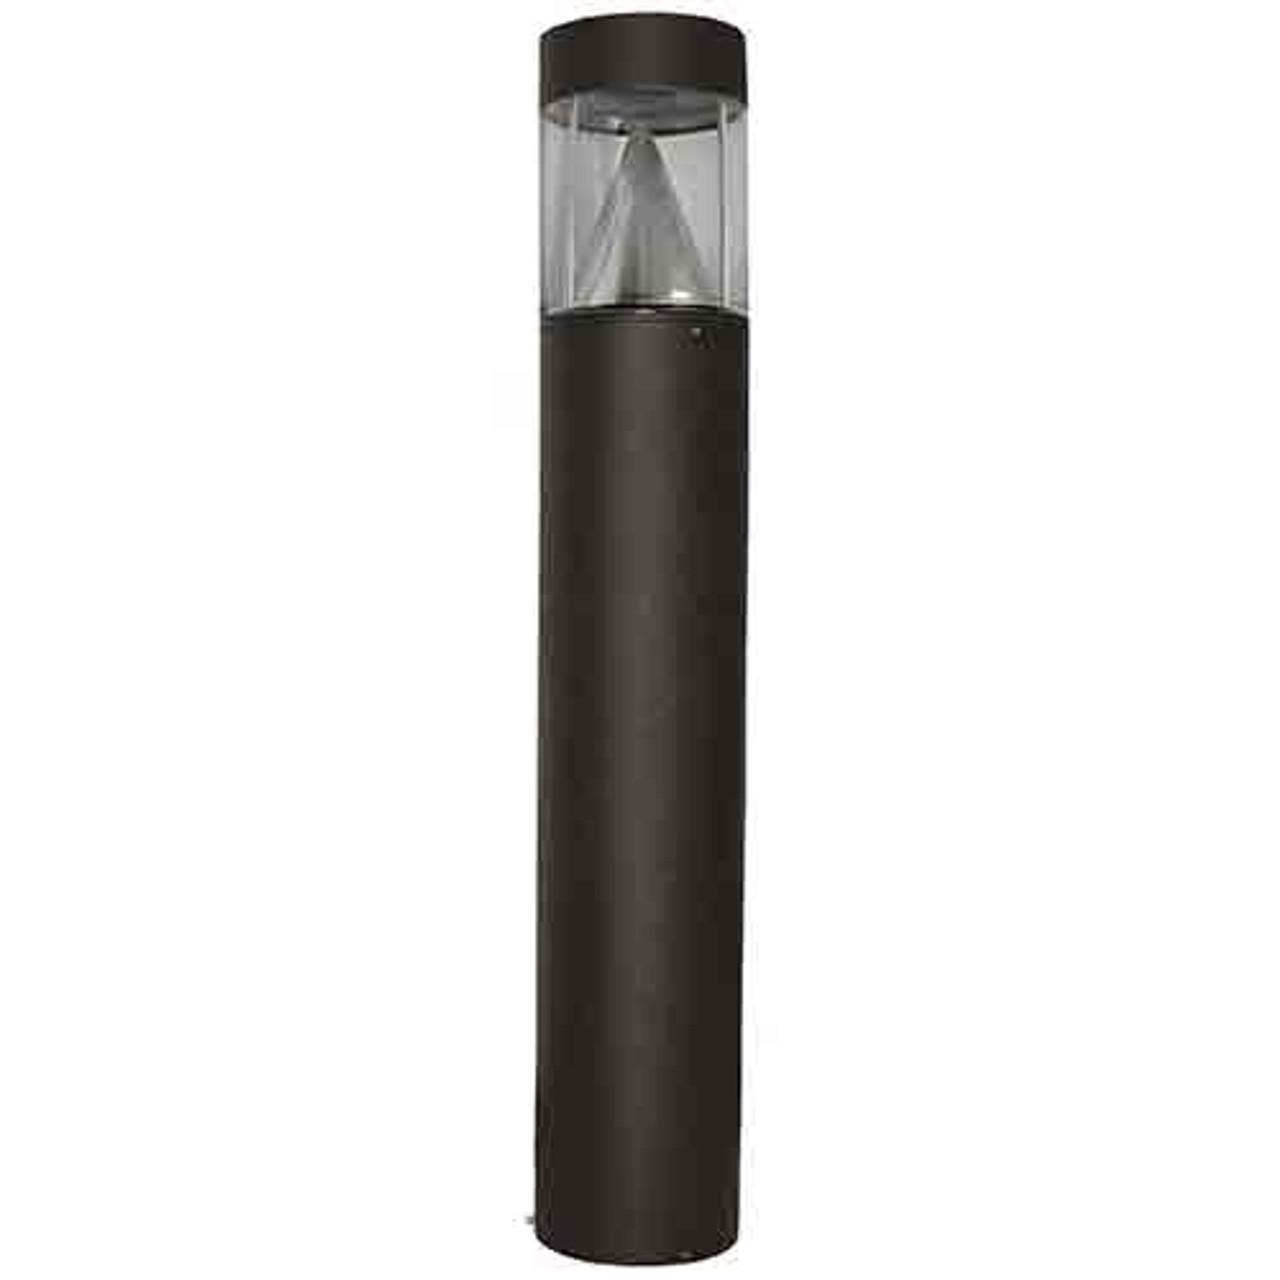 15 Watt LED Lighting Bollard Flat Top Cone Reflector